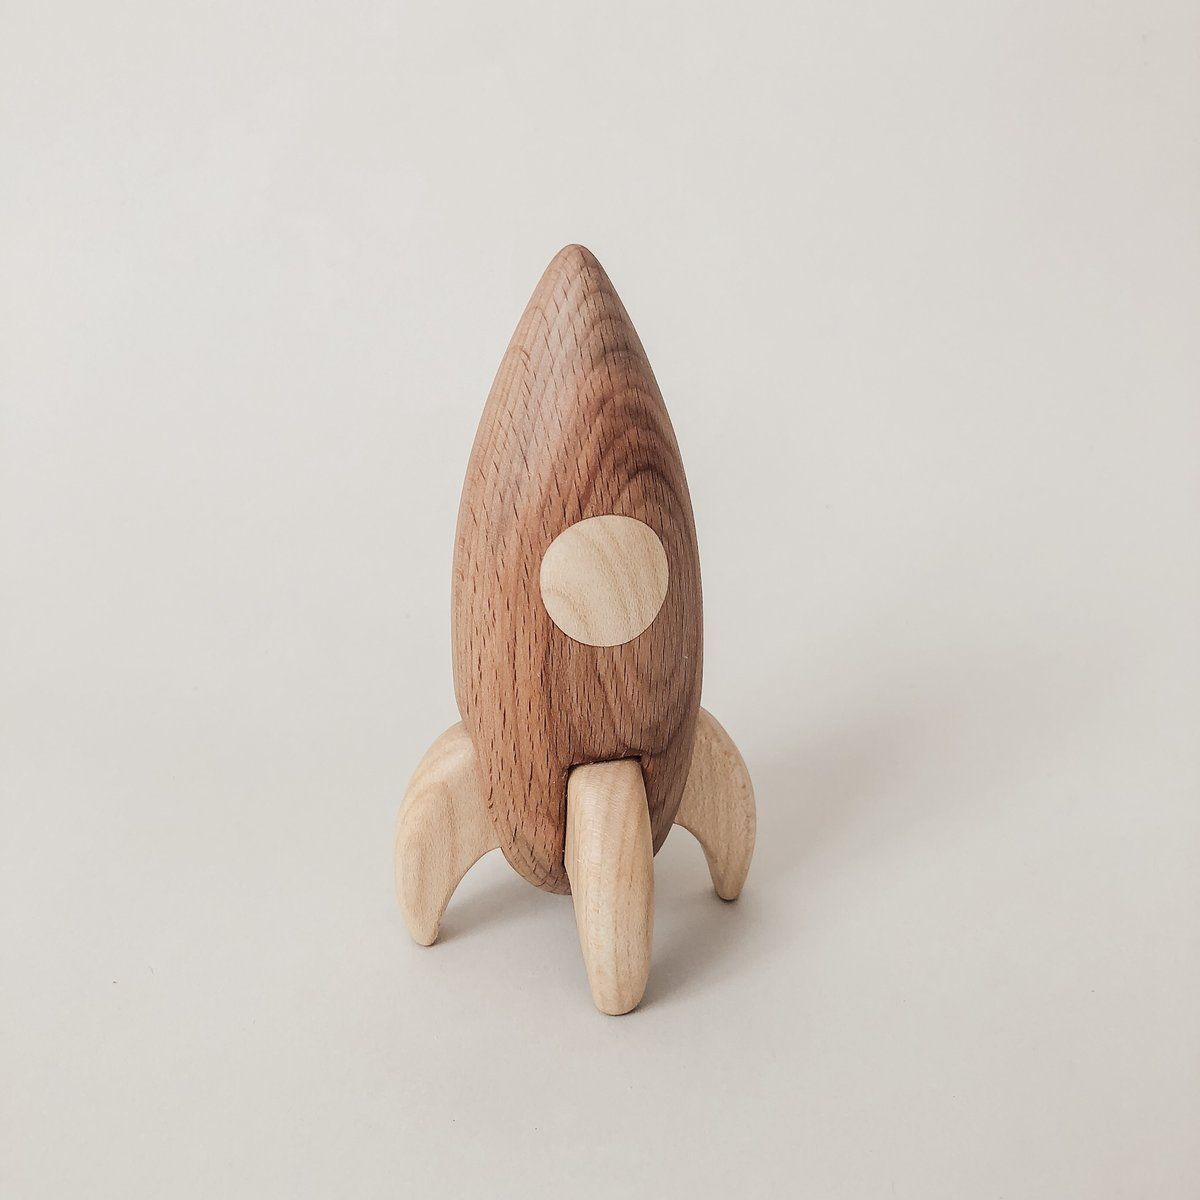 0164428b3e5c4 Rocket   j u d a h ☾a s h   Wooden diy, Wood toys, Woodworking toys